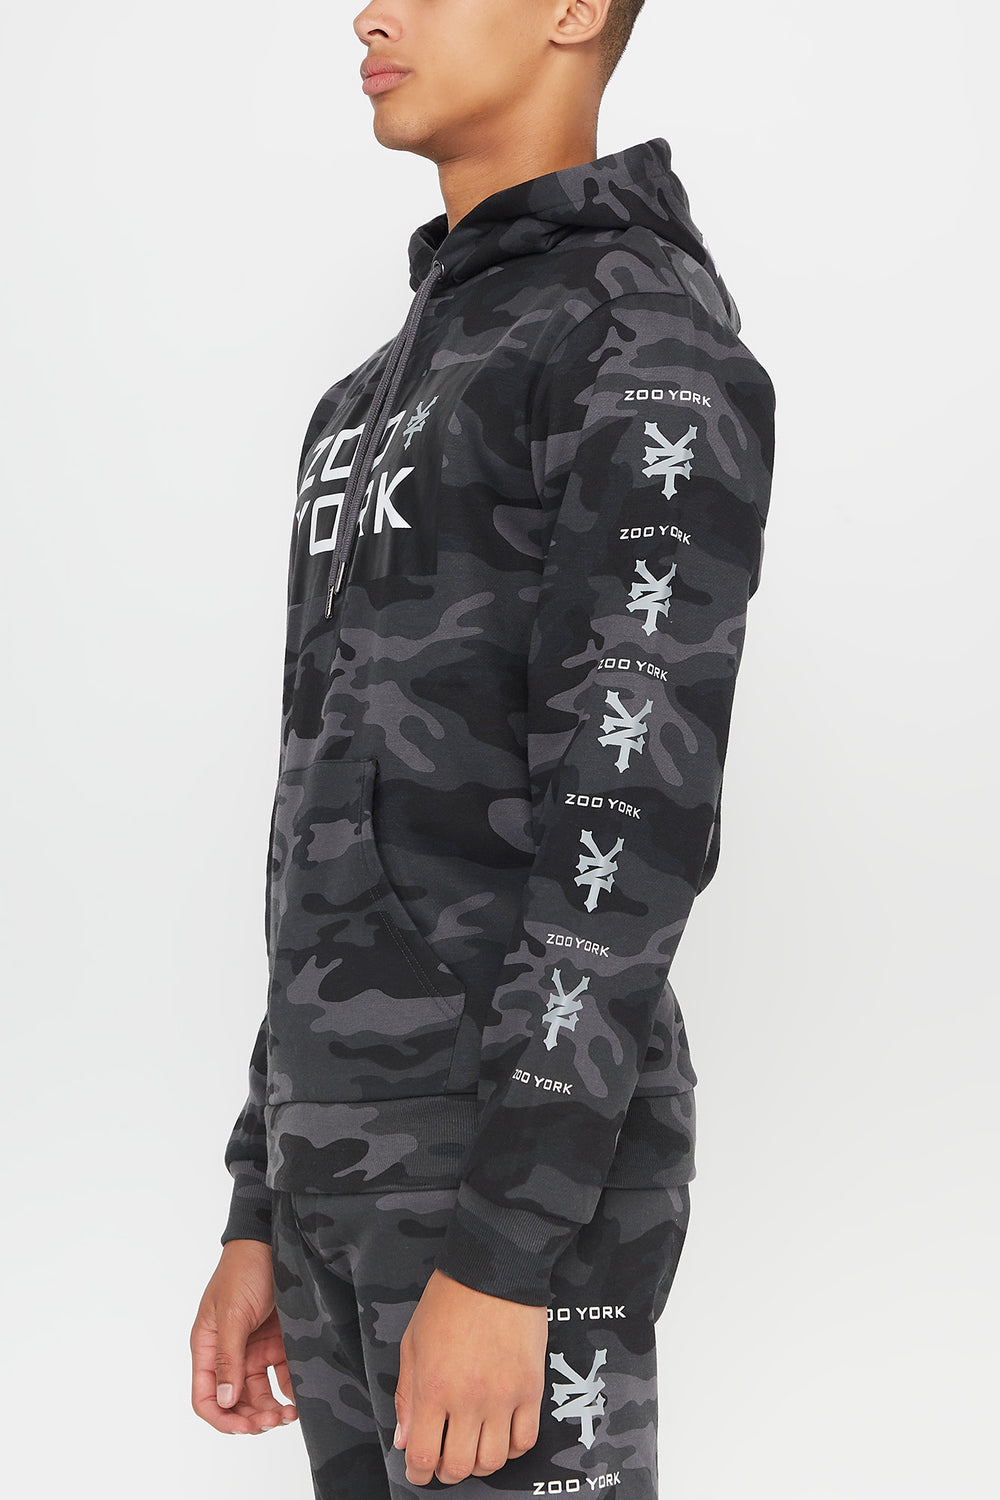 Zoo York Mens Camo Hoodie Black with White